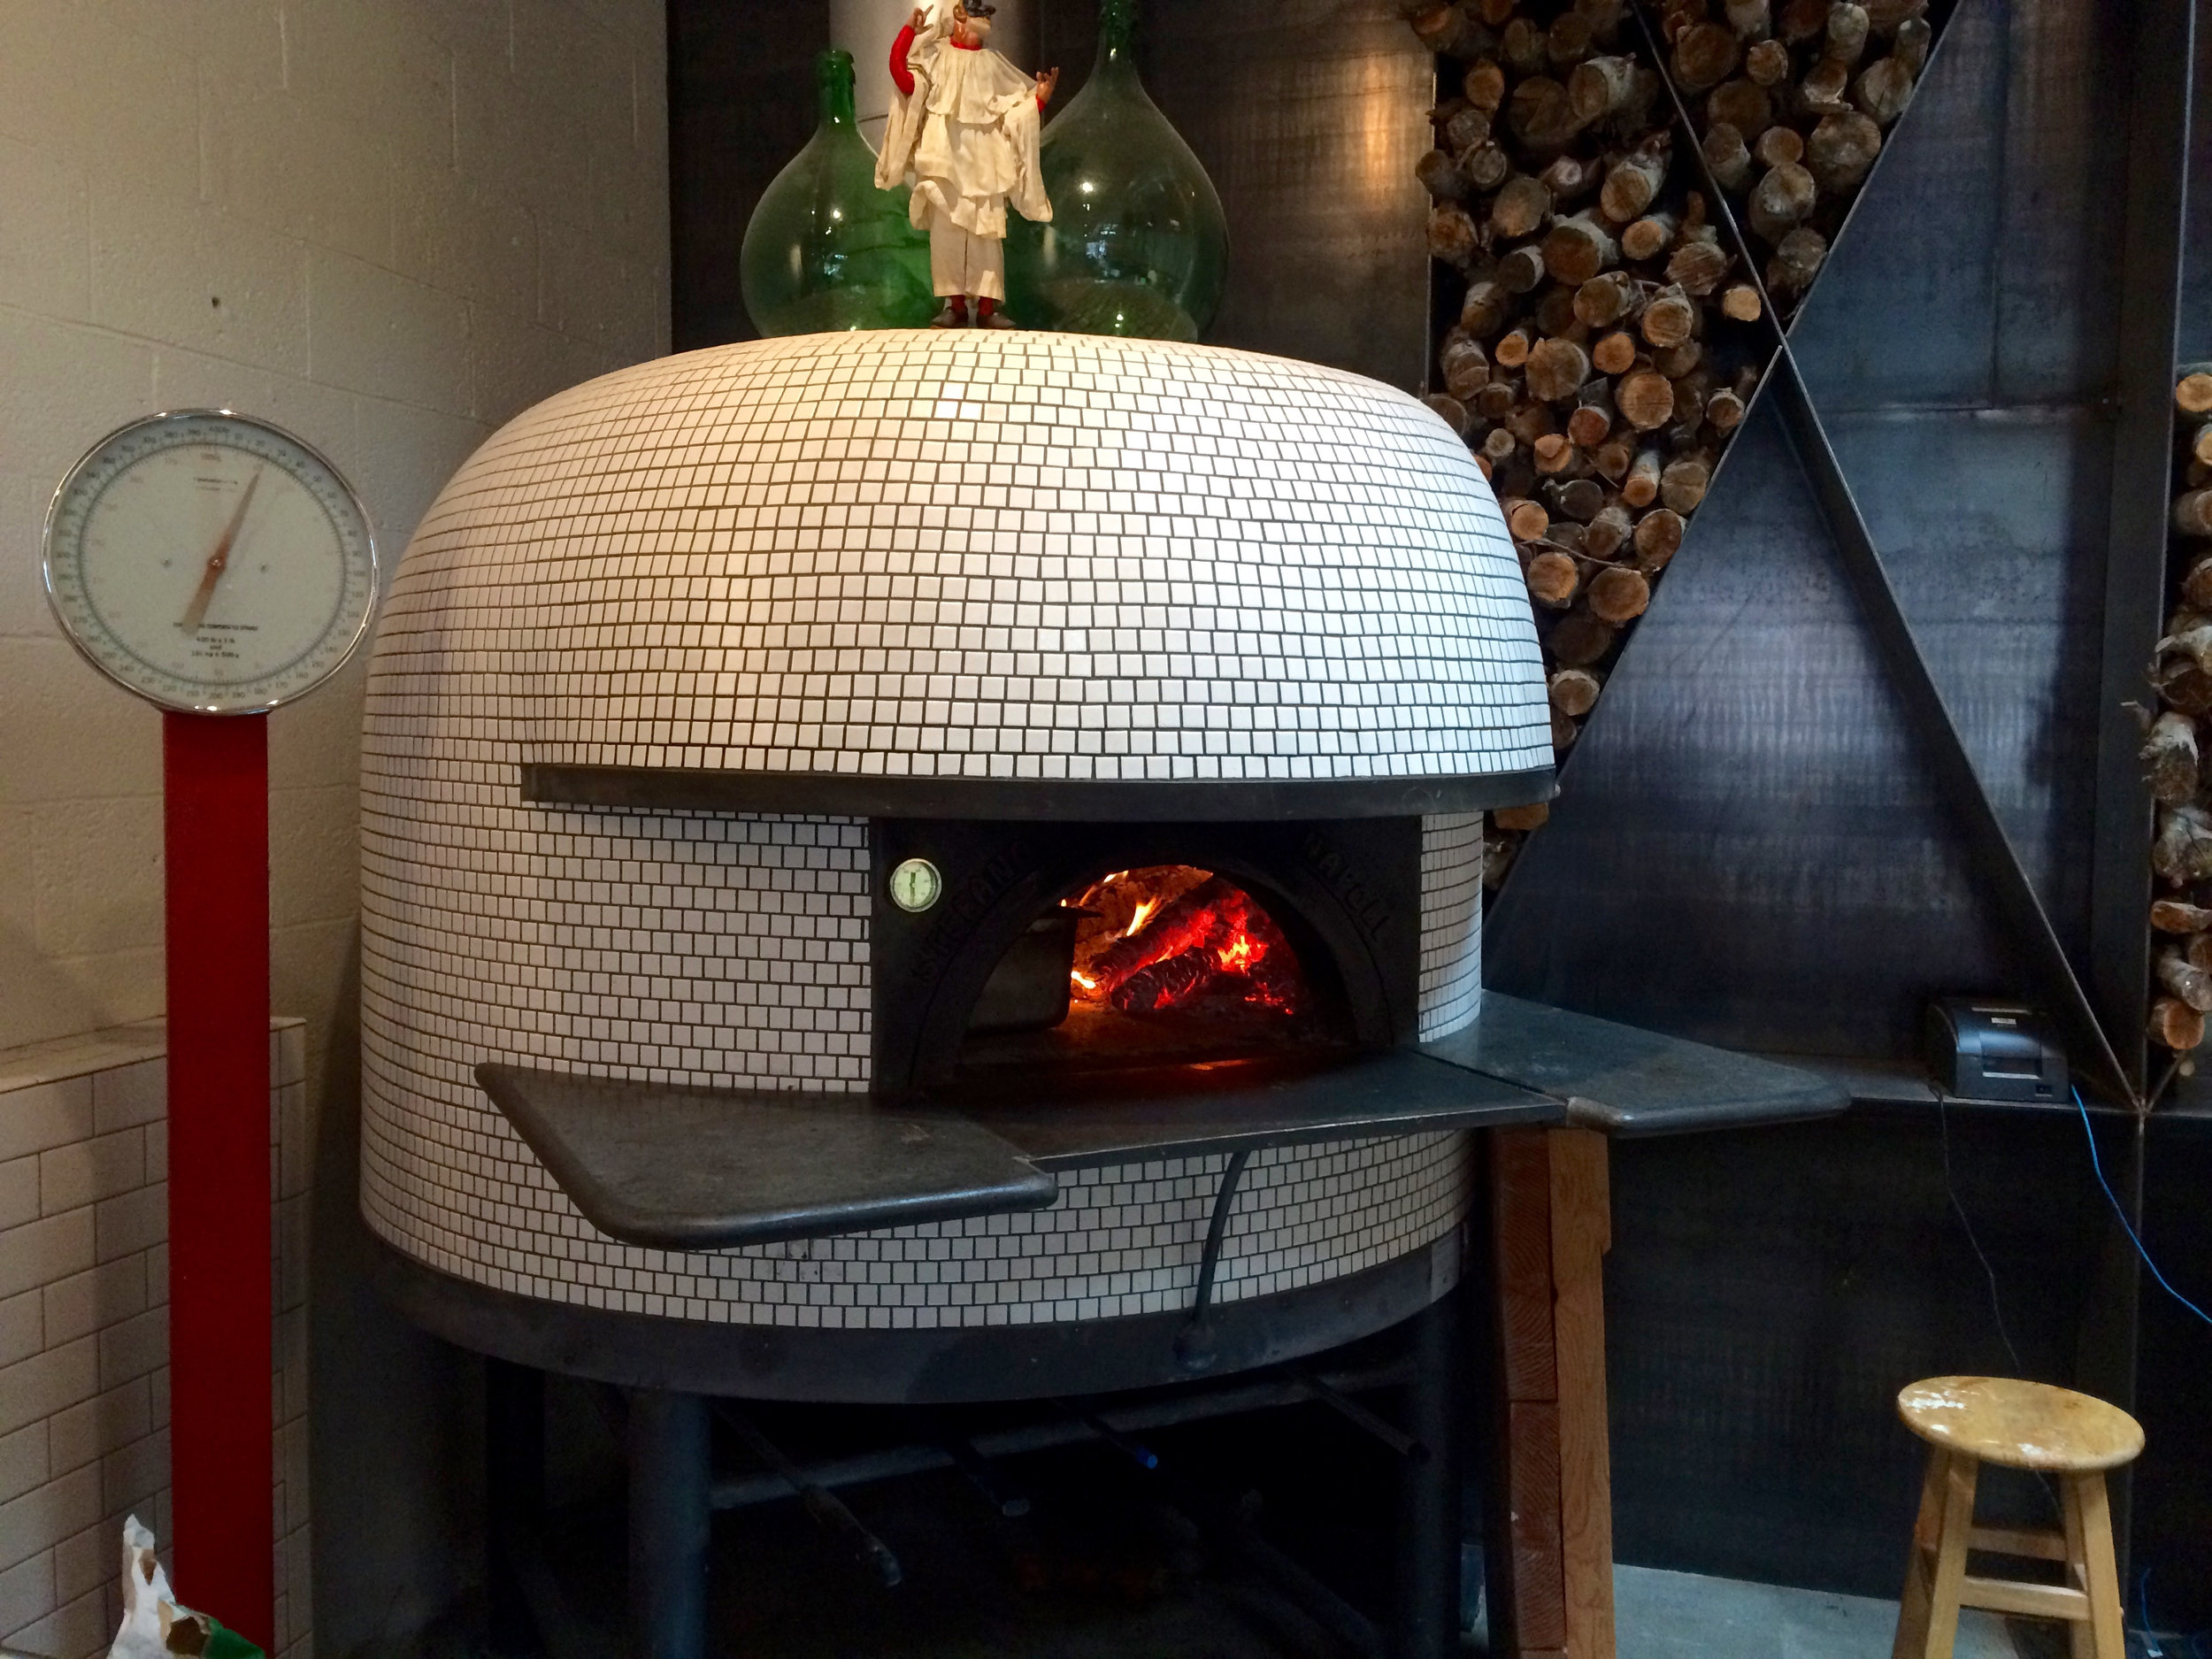 The Stefano Ferrara oven which was made in Naples, Italy, is such a beauty. I love the mosaic tile finish.